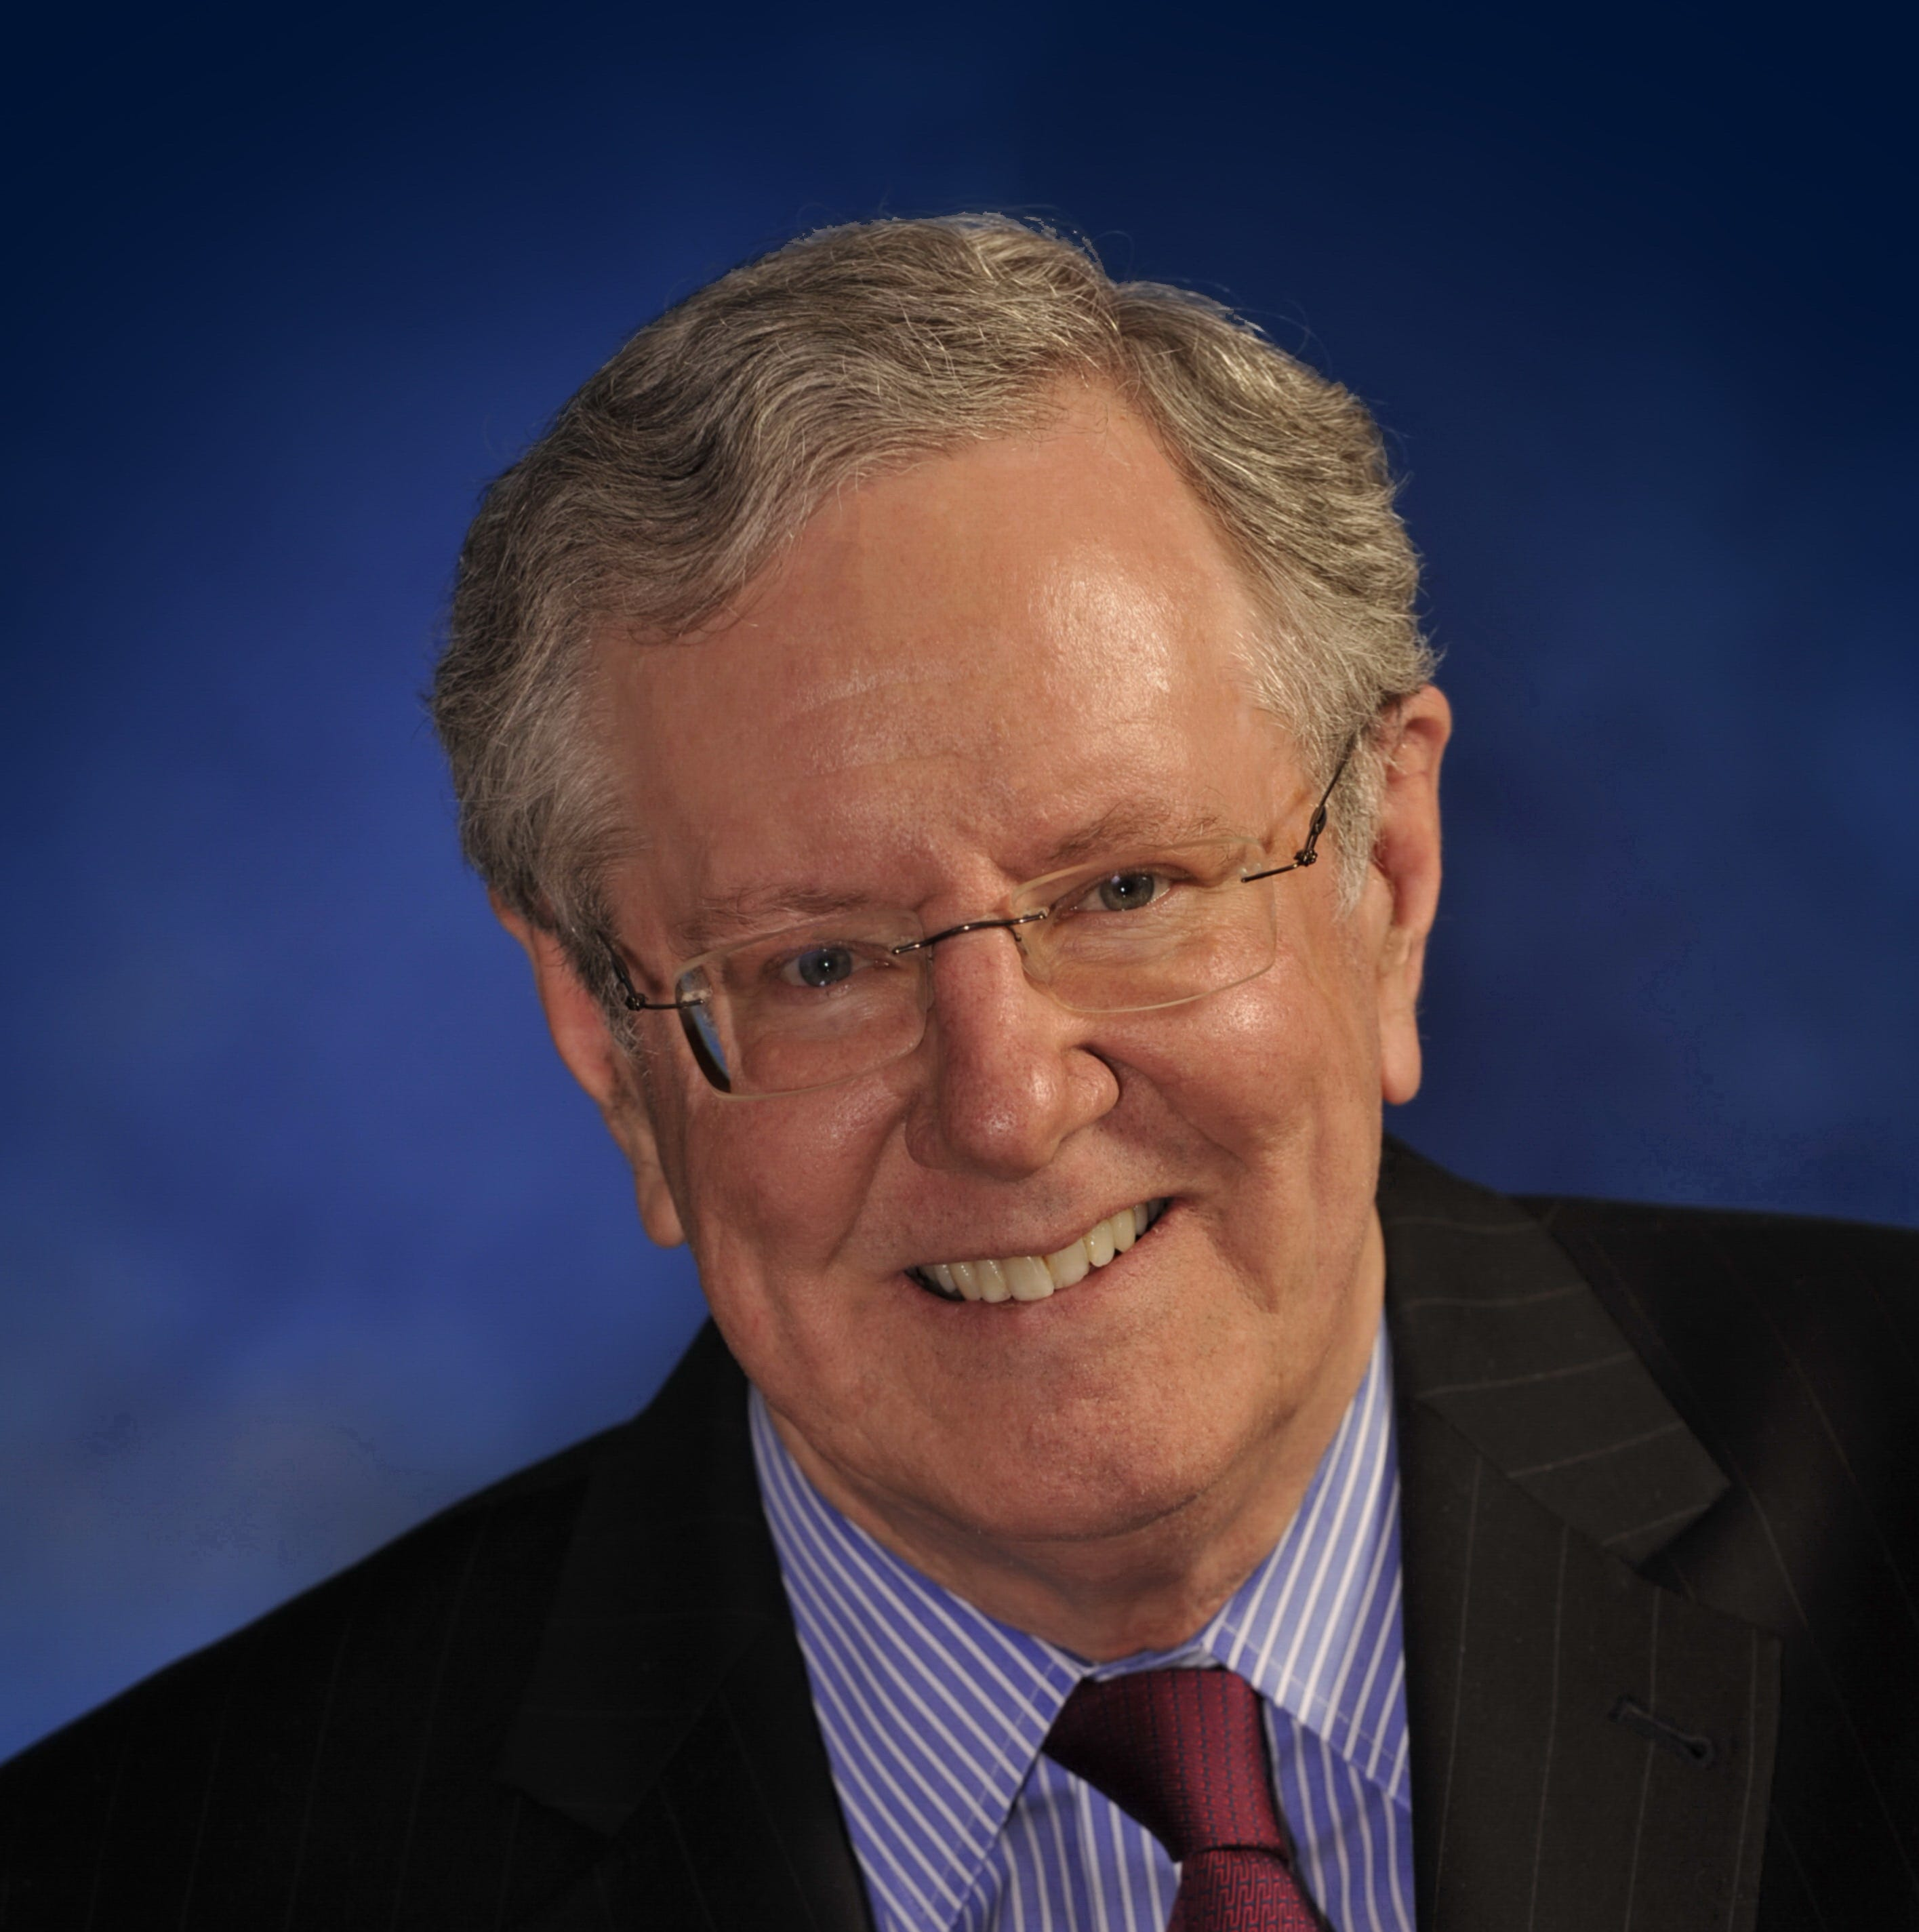 Steve Forbes to give speech on ethical leadership in Naples, says timing is ideal